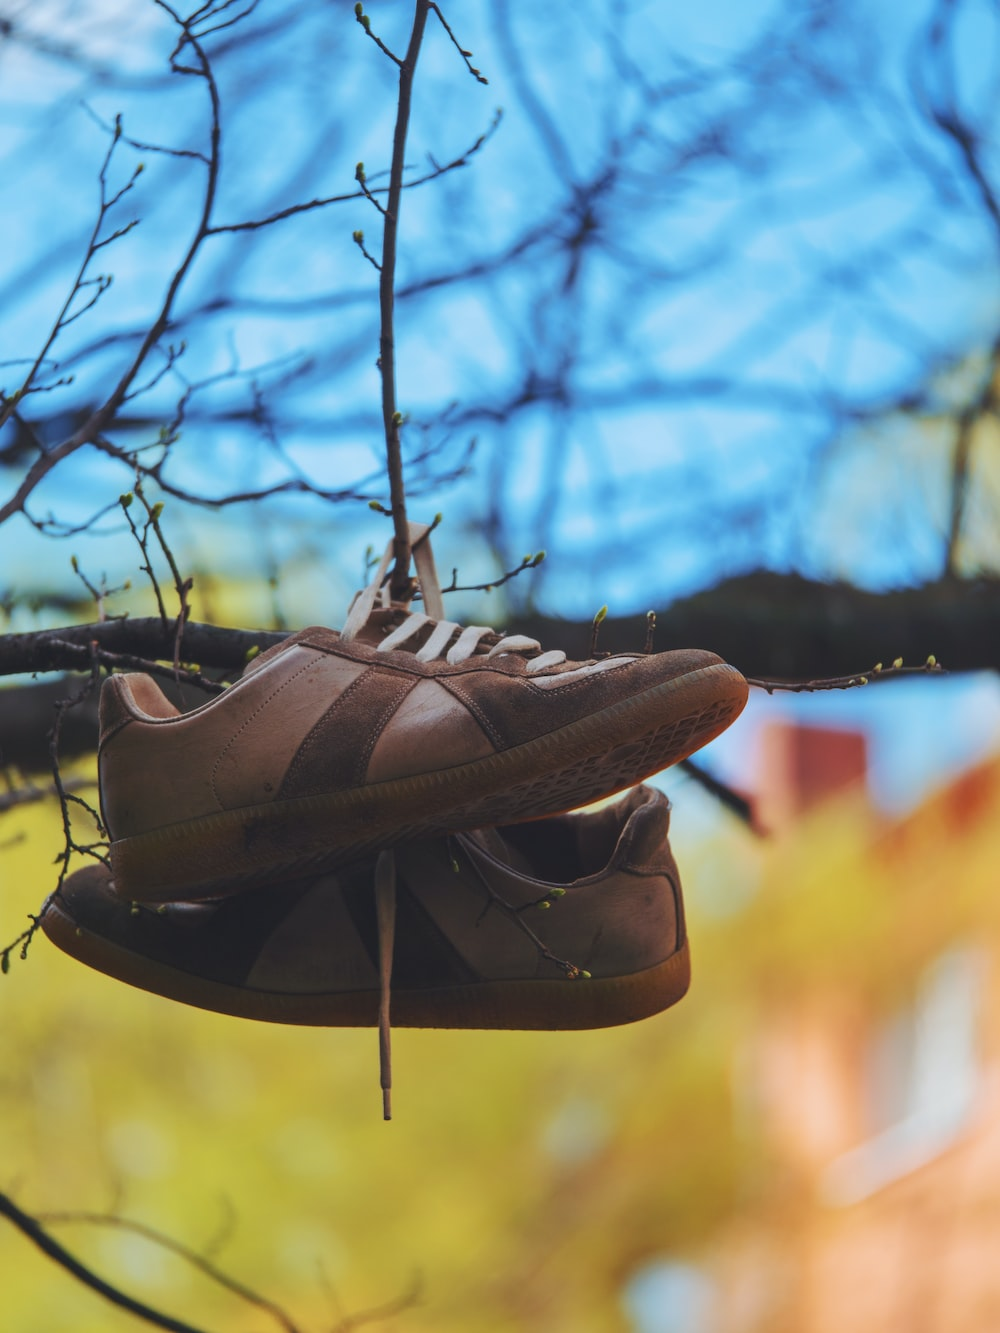 pair of low-top shoes hanging on tree branch